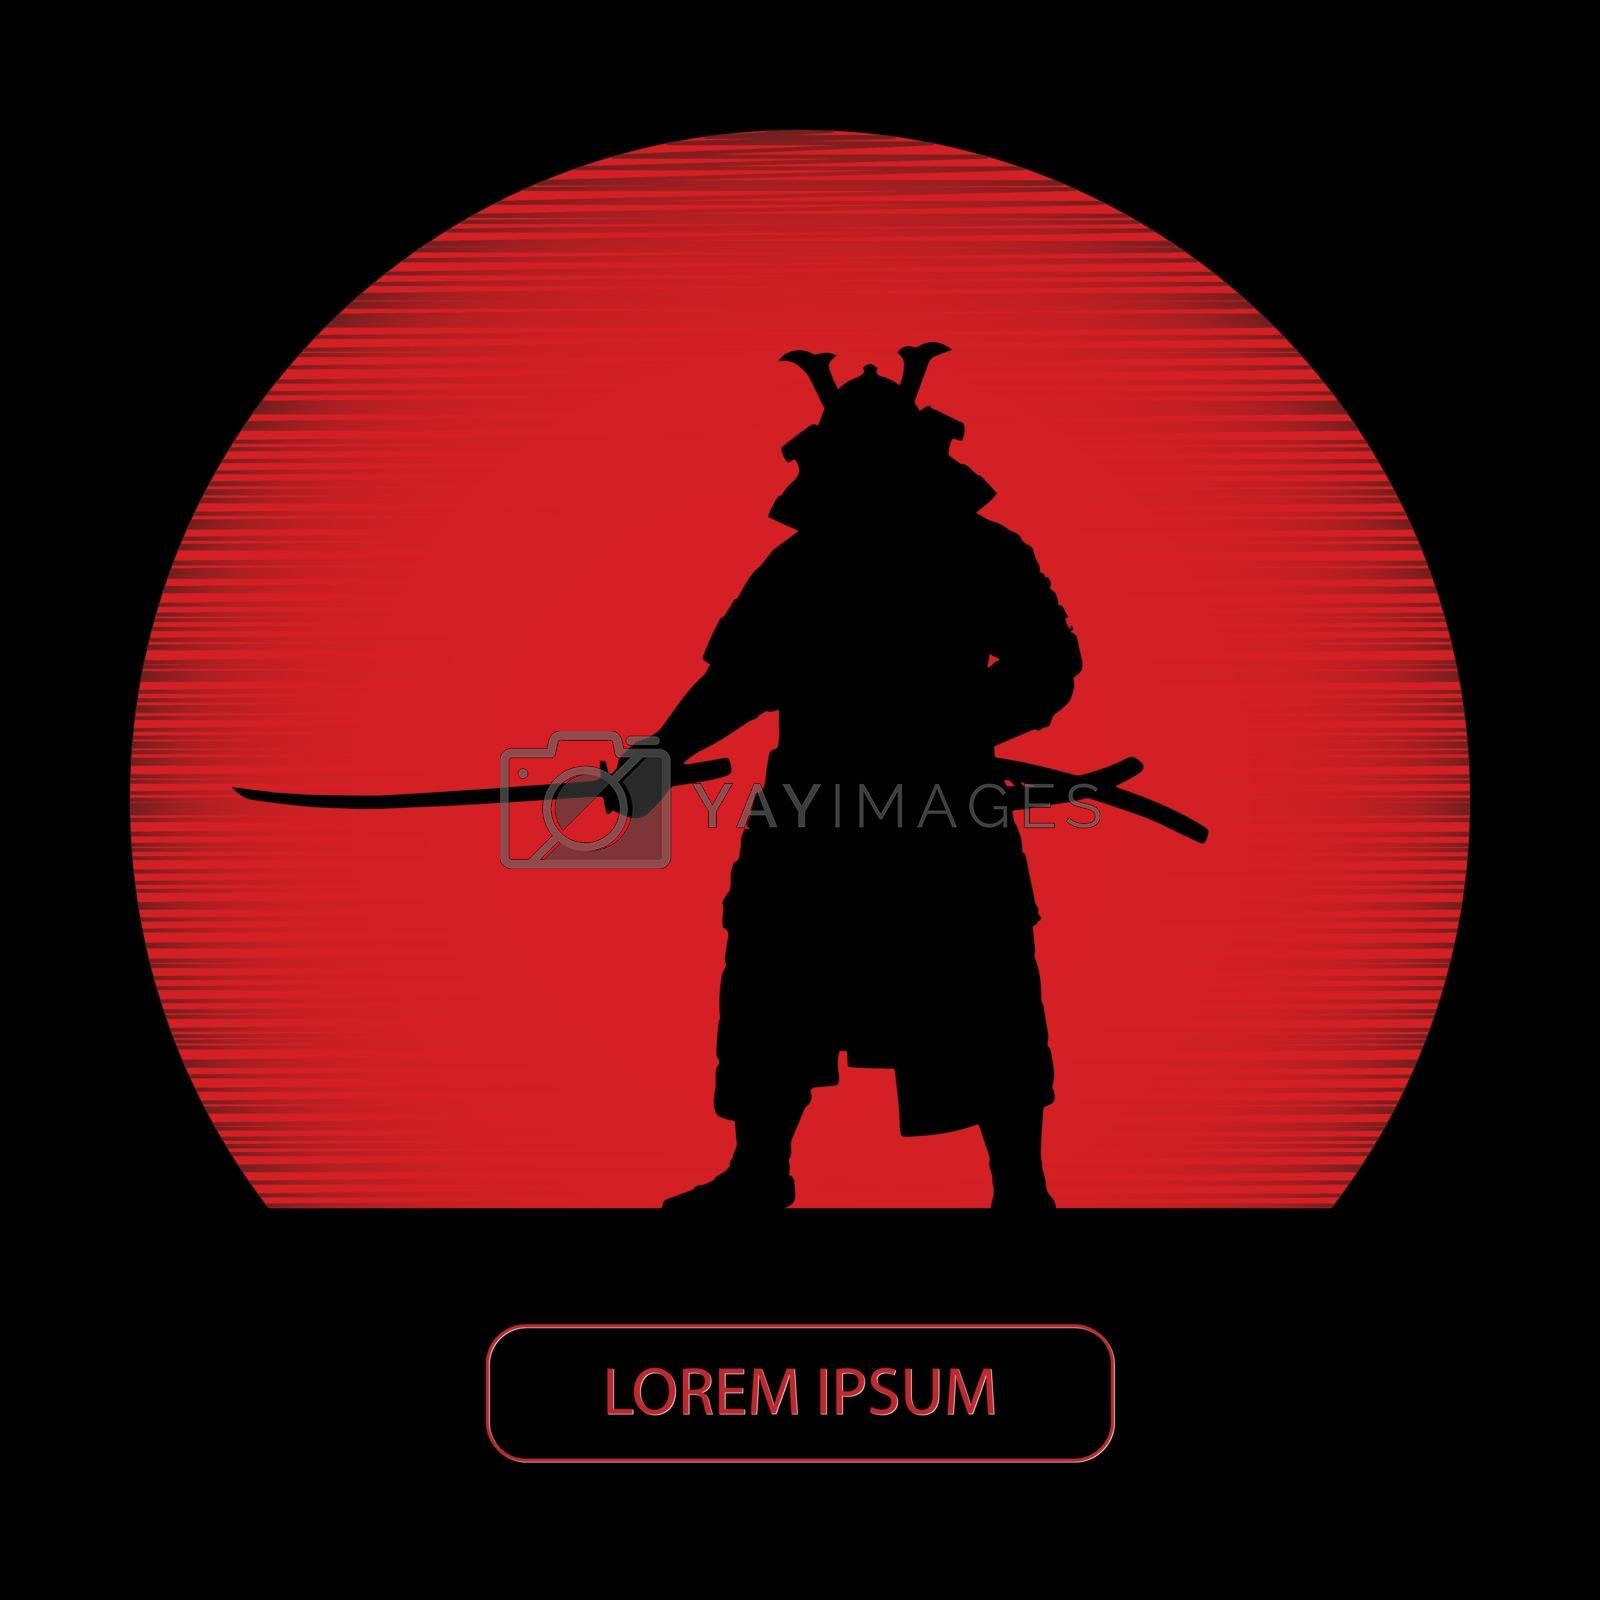 Samurai with a sword on the background of a red disk